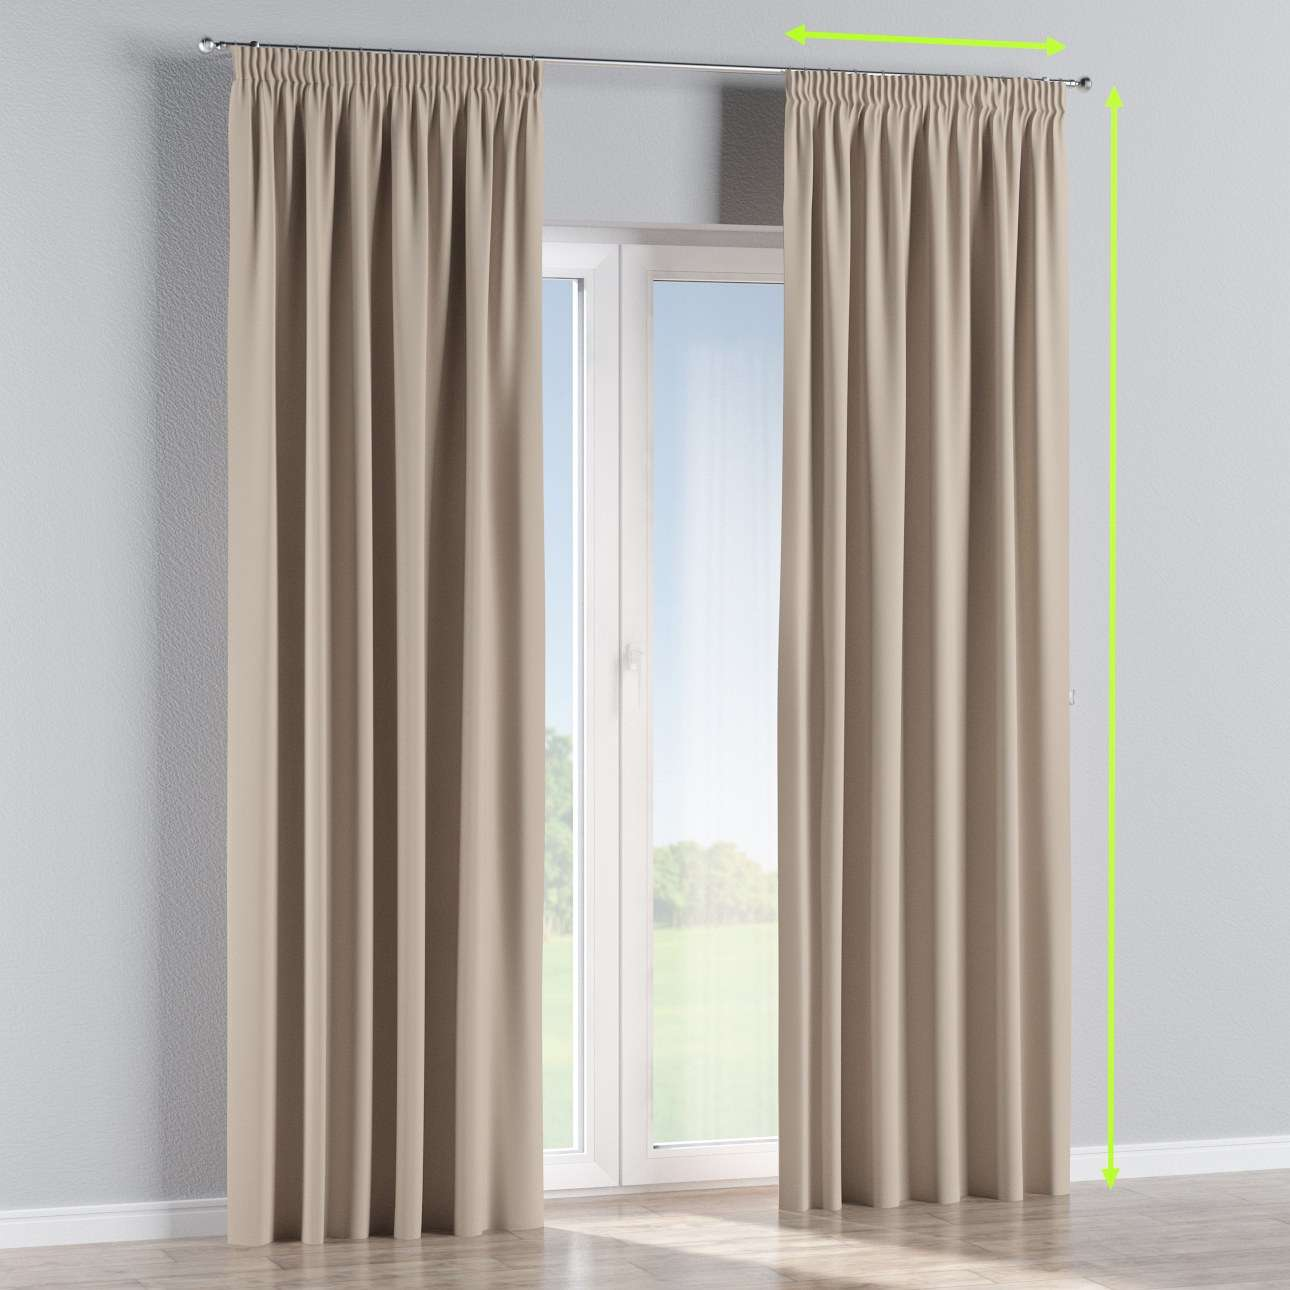 Pencil pleat curtain in collection Blackout, fabric: 269-00